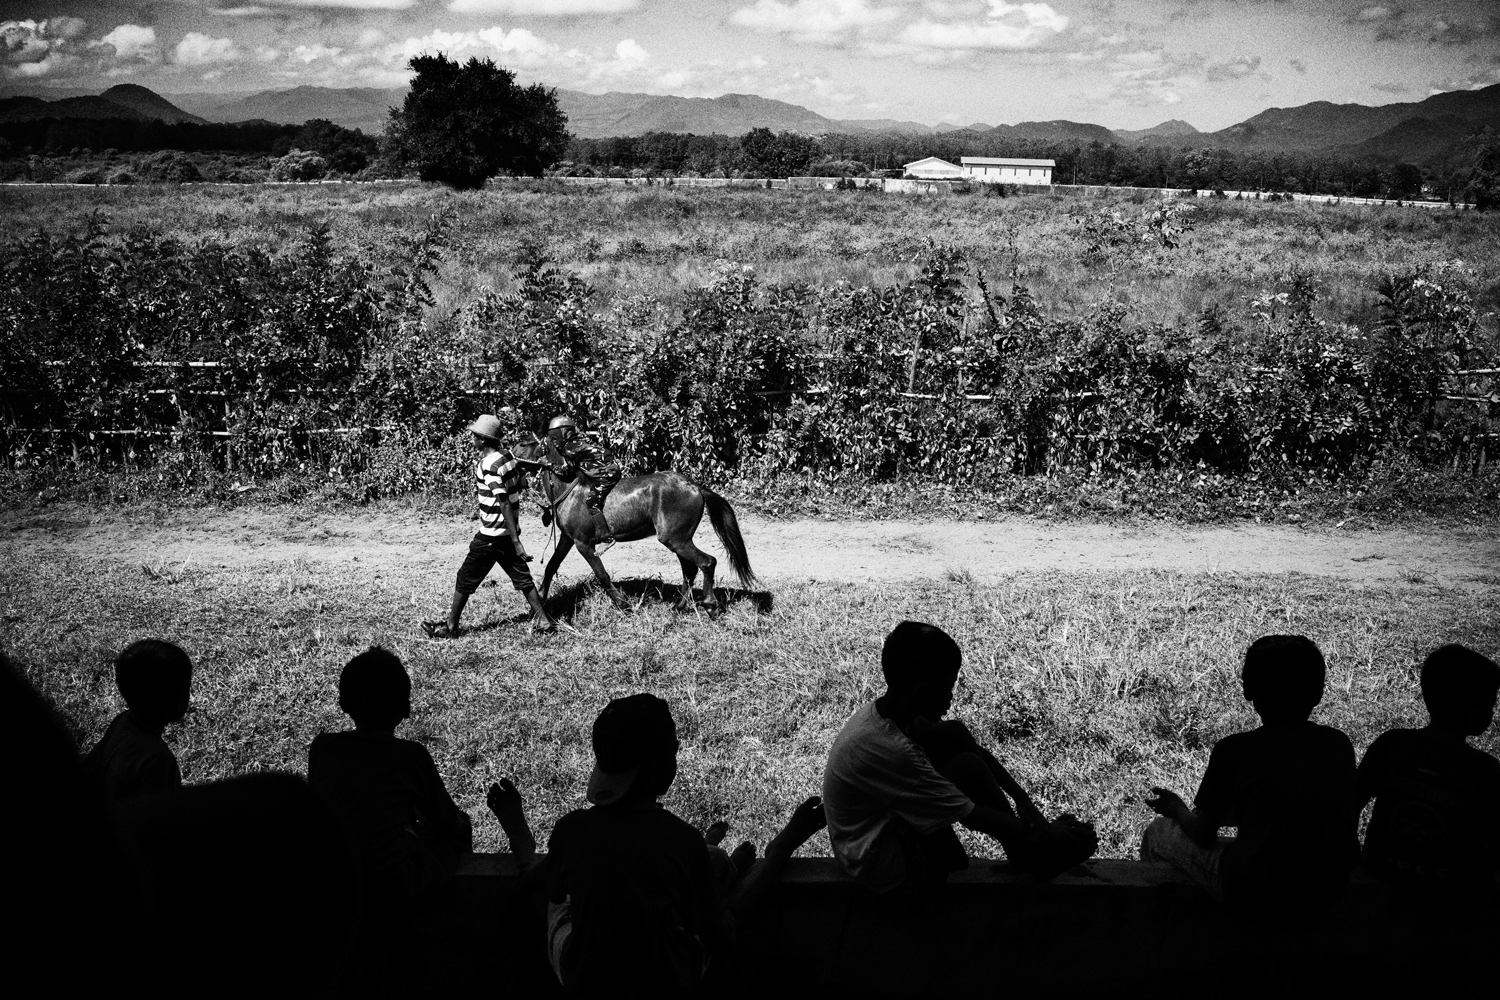 May 19, 2013. A crew lead a horse from rhe track following a race.